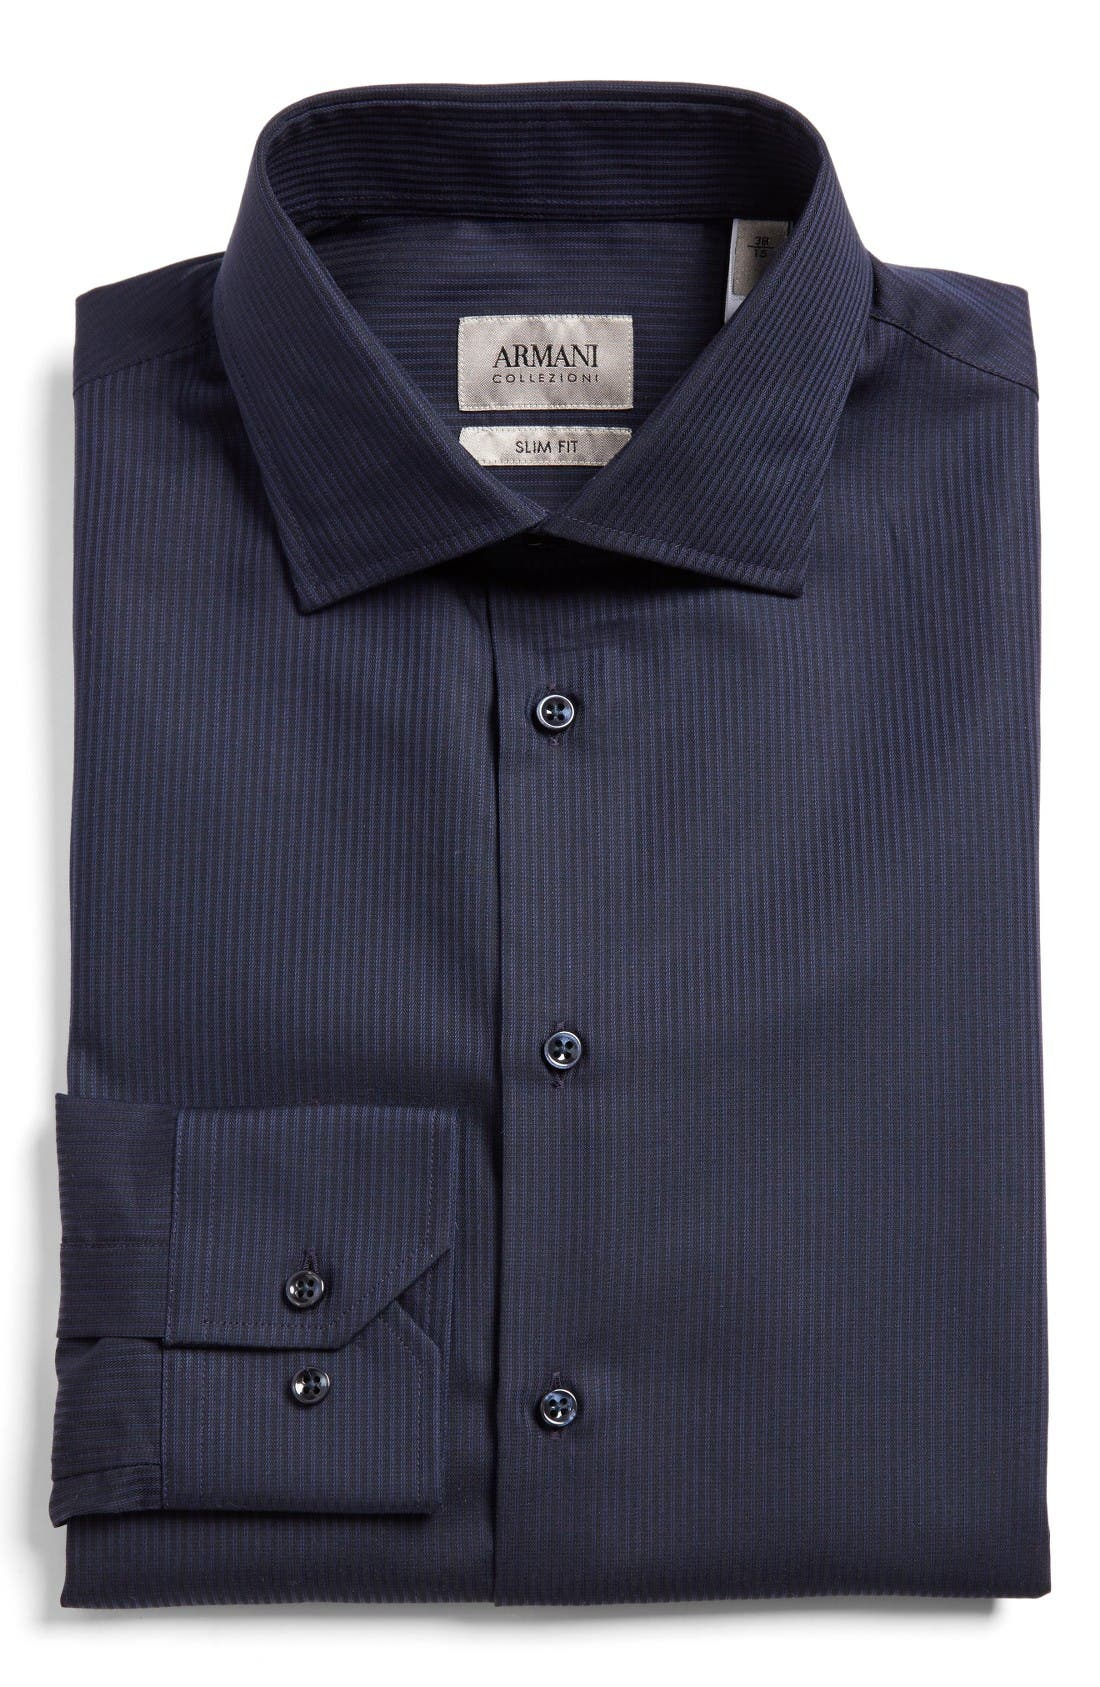 ARMANI COLLEZIONI Tonal Stripe Trim Fit Dress Shirt